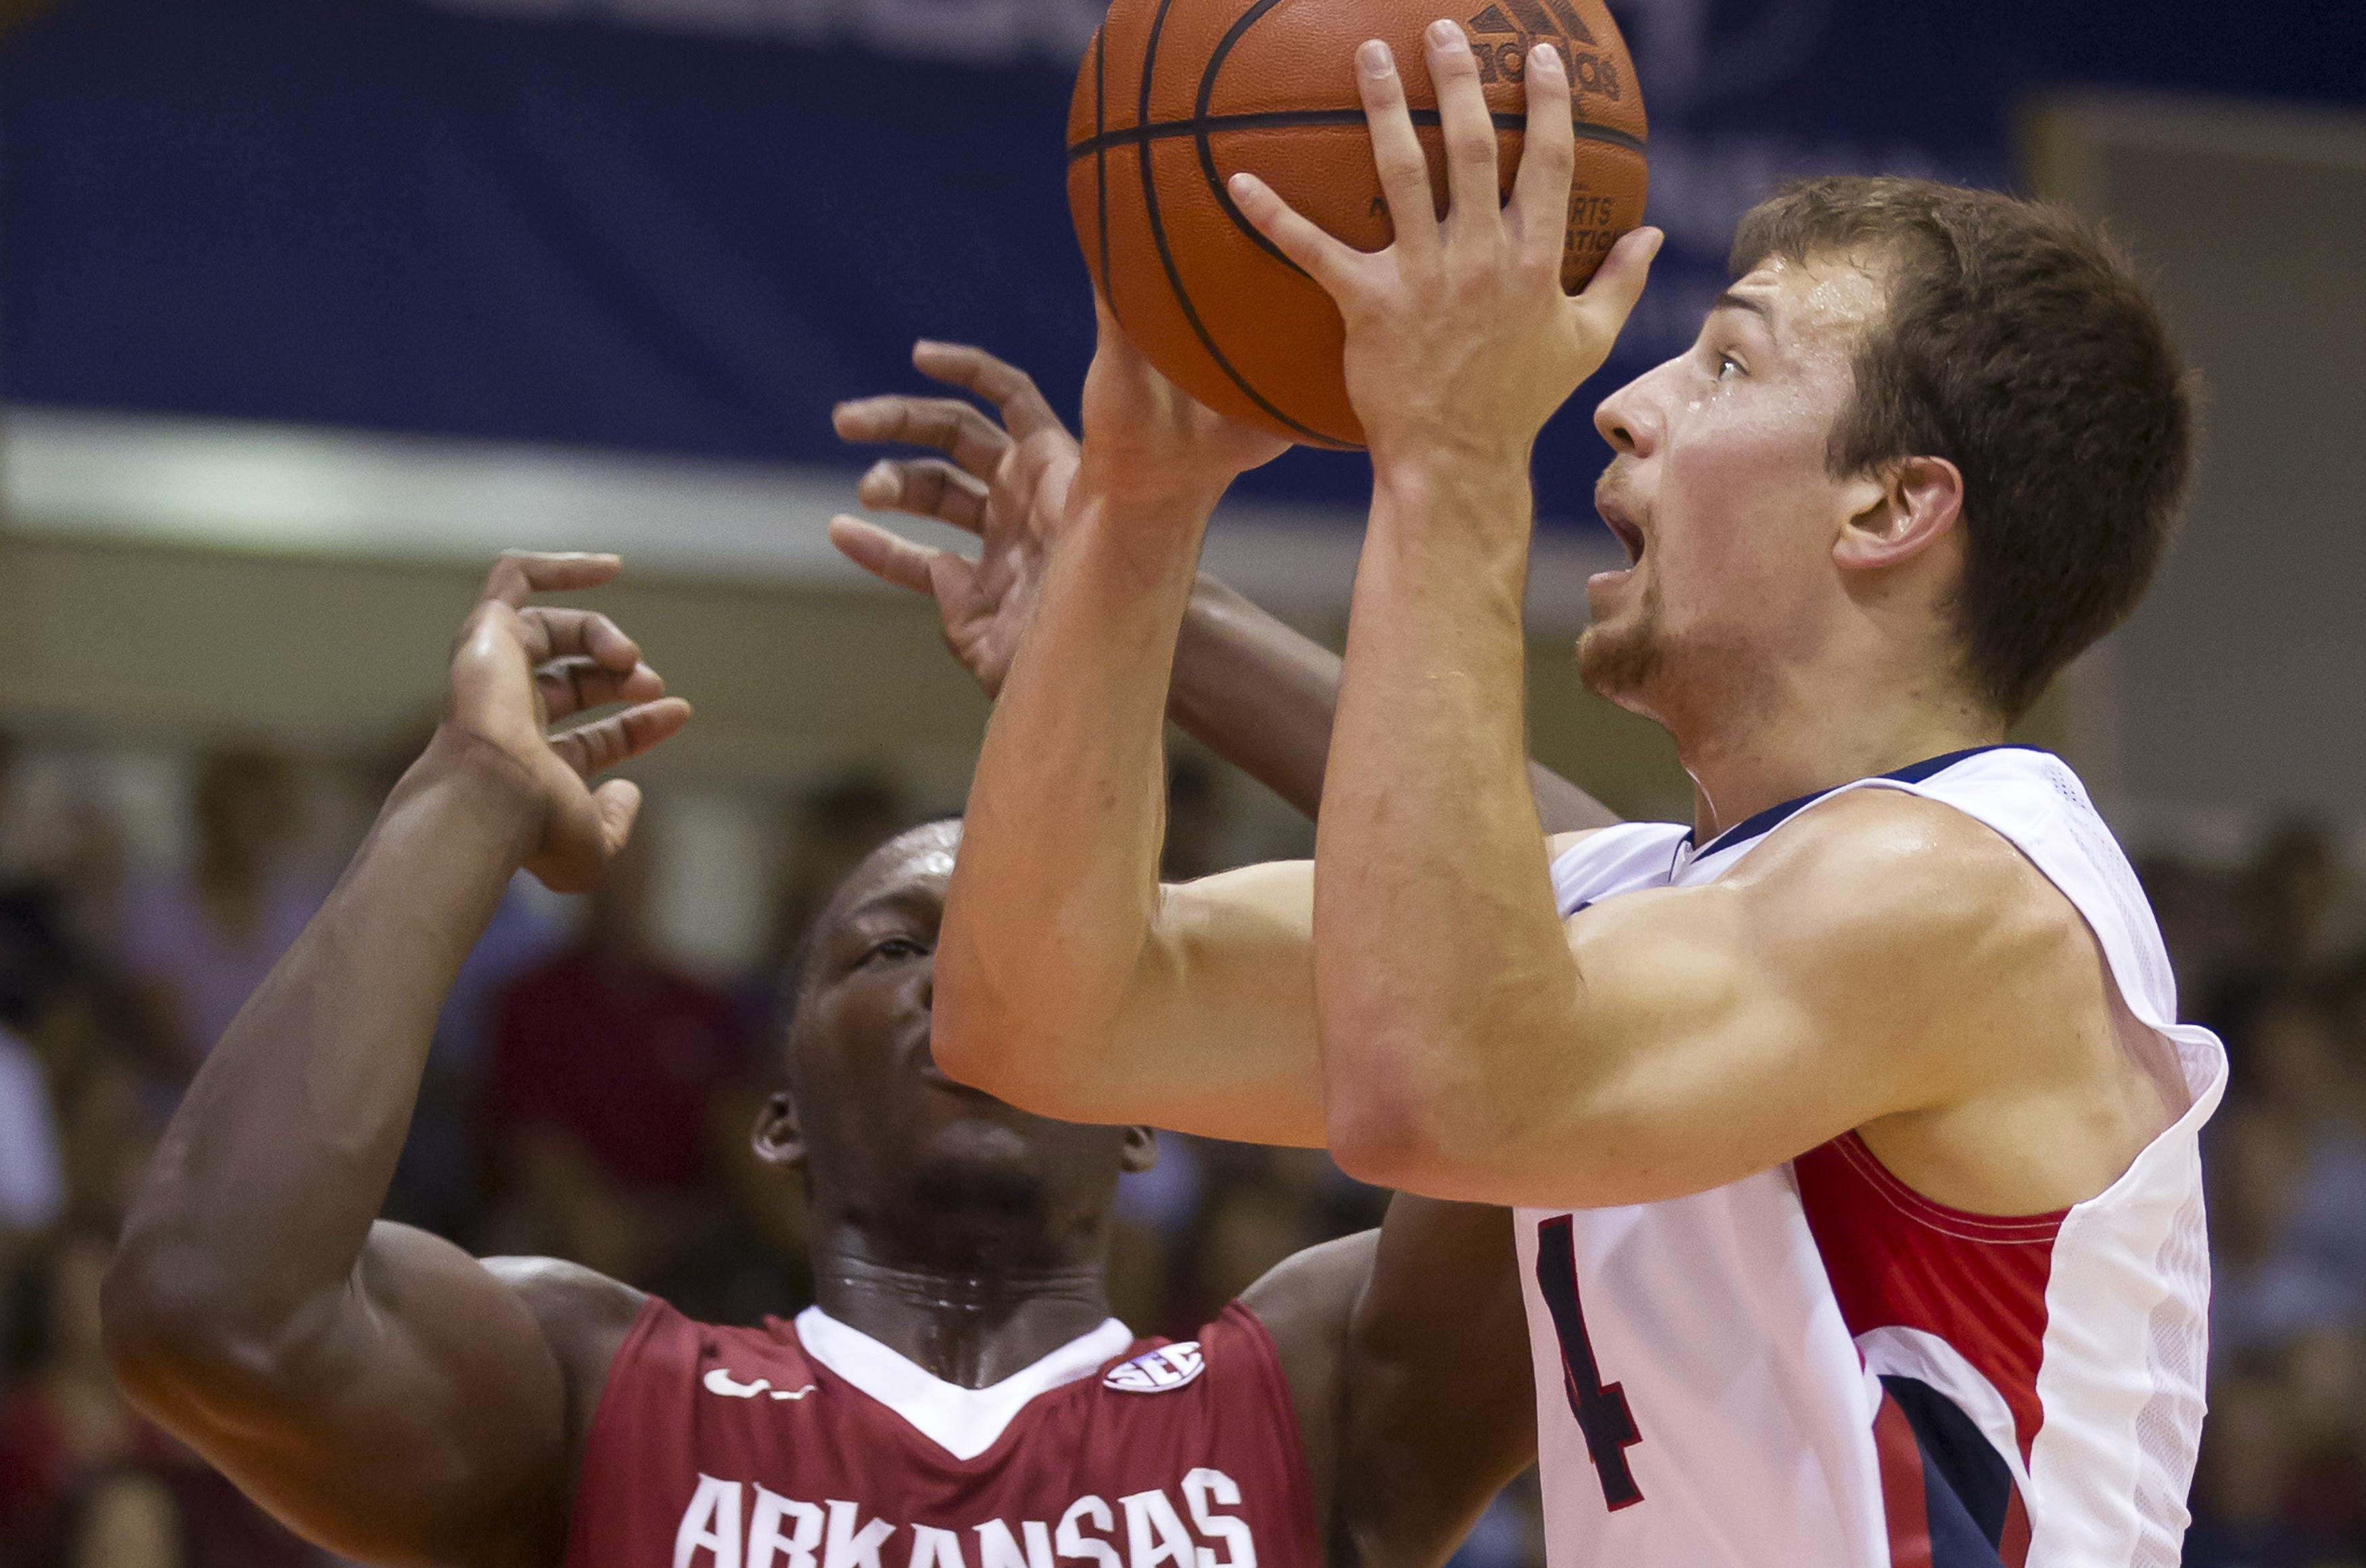 Gonzaga's Kevin Pangos drives on Arkansas foward Alandise Harris at the 2013 Maui Invitational. Pangos